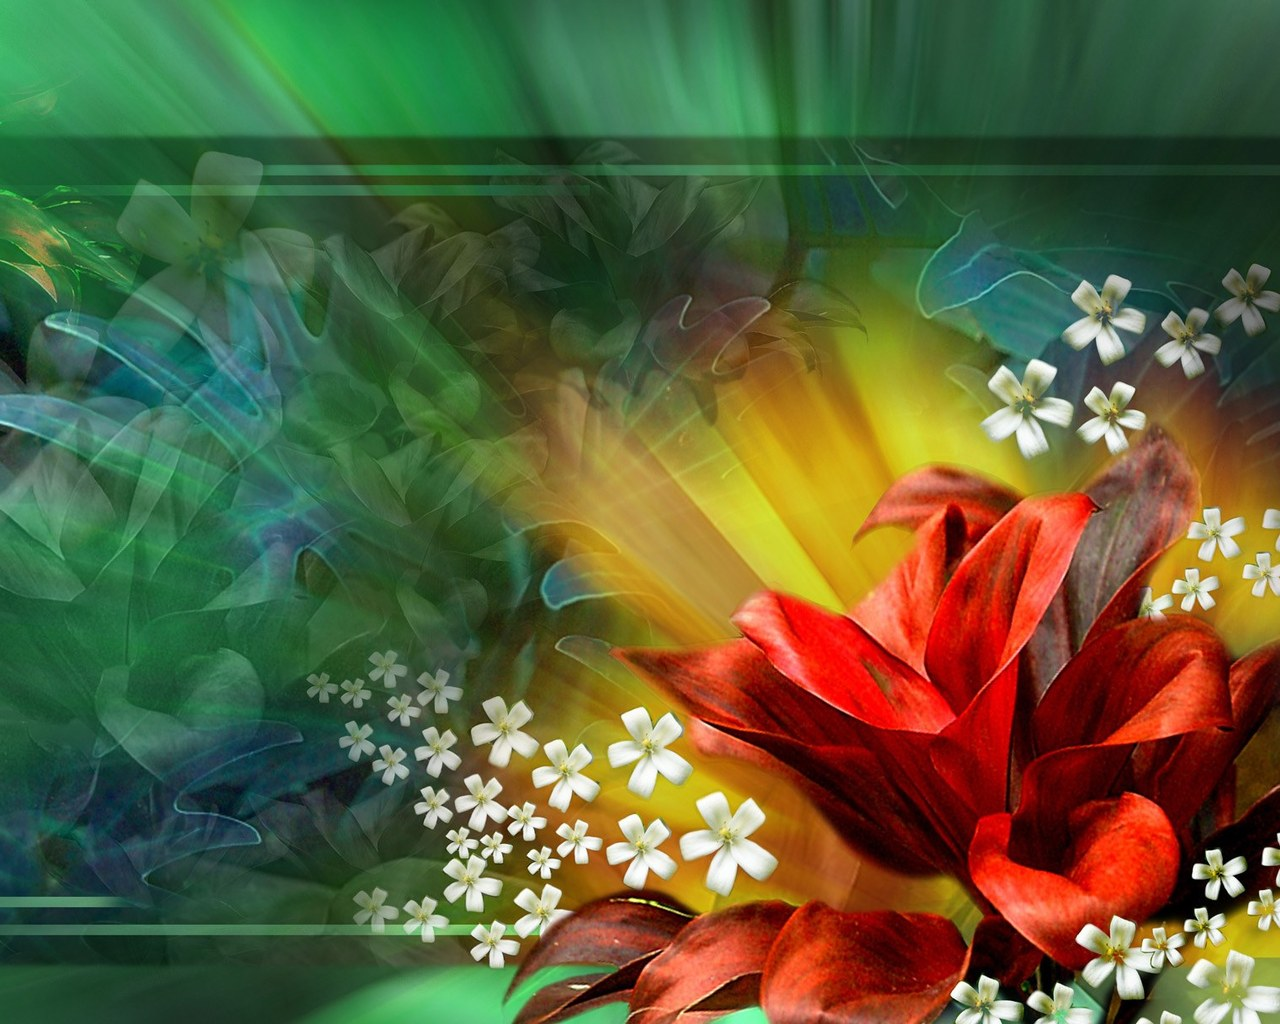 http://4.bp.blogspot.com/_Pg4QQIF9uoE/TKdBbzThf6I/AAAAAAAAAA0/lhLG9vo7kyc/s1600/Download-Free-Windows-7-Wallpapers-and-Theme-25.jpg